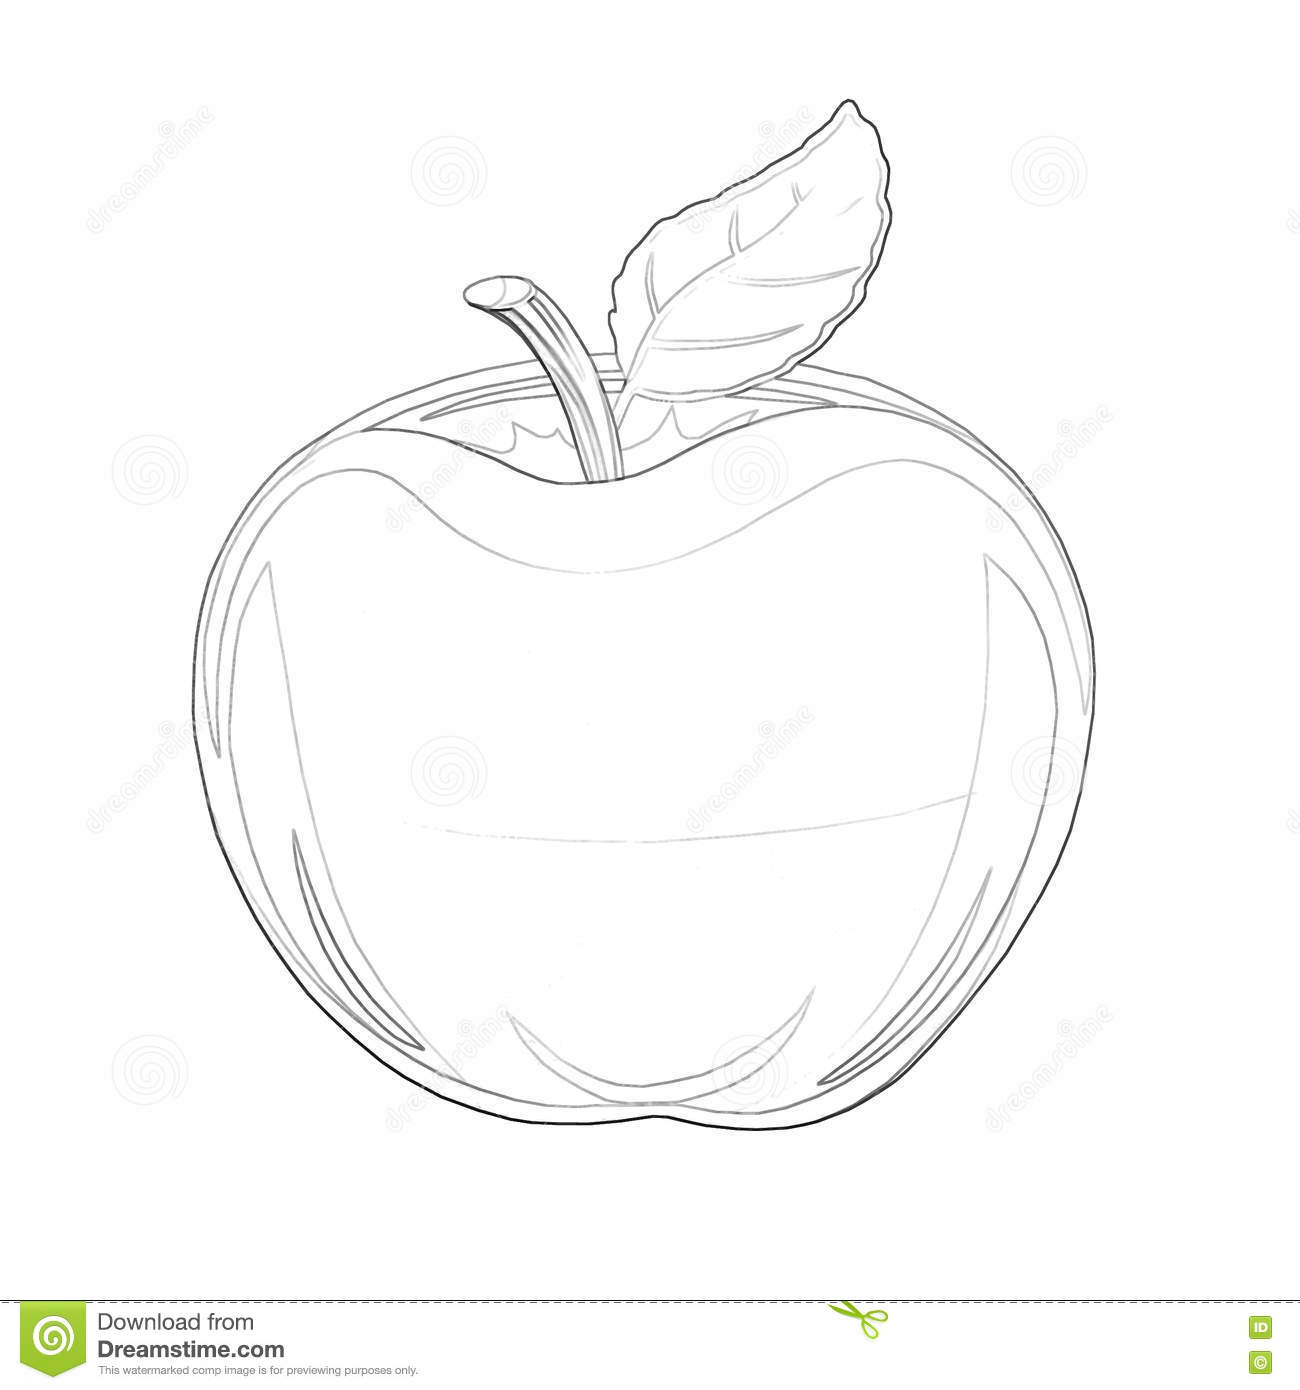 Illustration: Coloring Book Series: Apple. Soft Thin Line